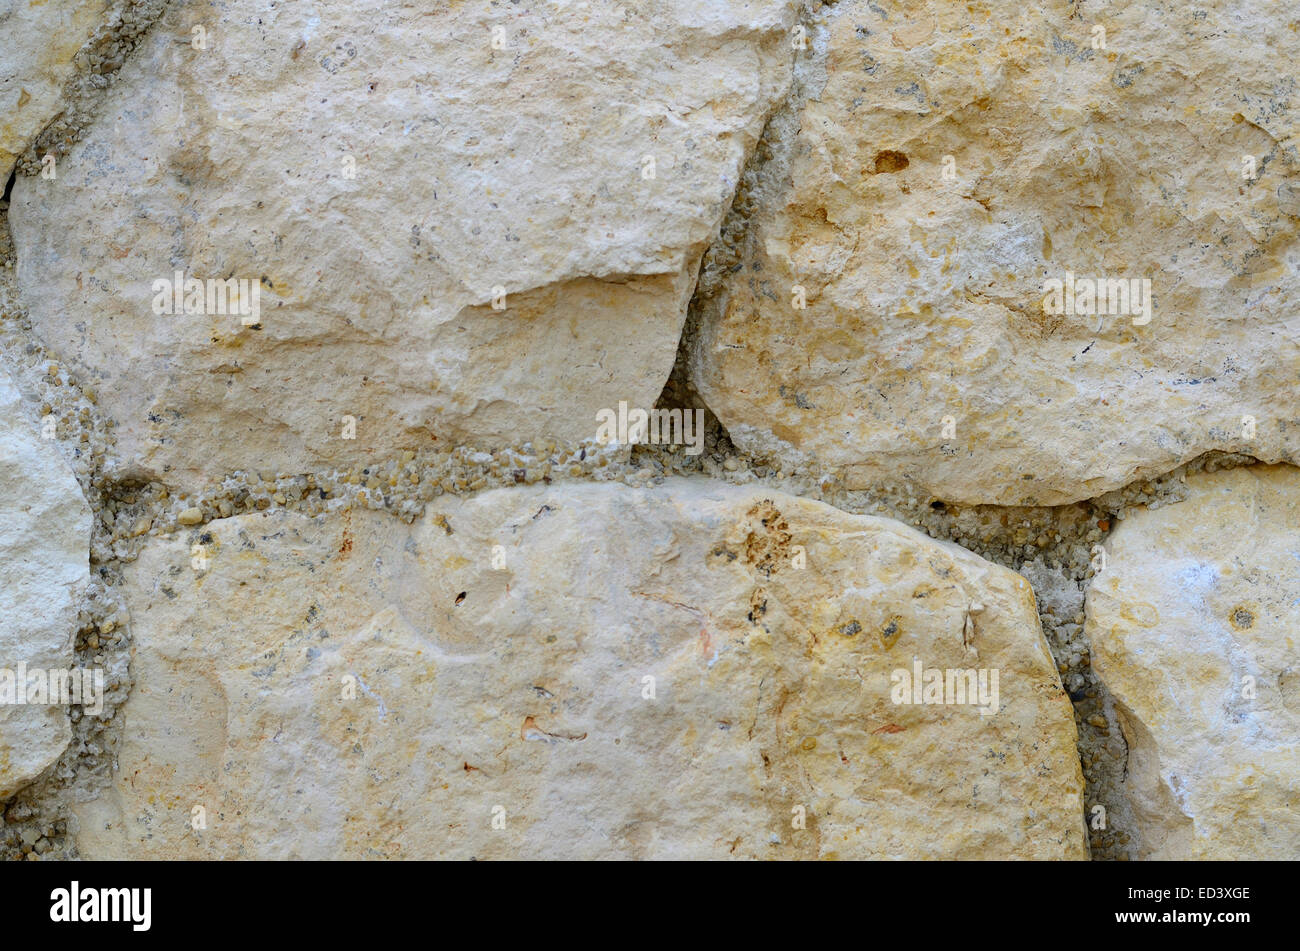 stone wall seamless Vector illustration background - texture pattern for continuous replicate - Stock Image